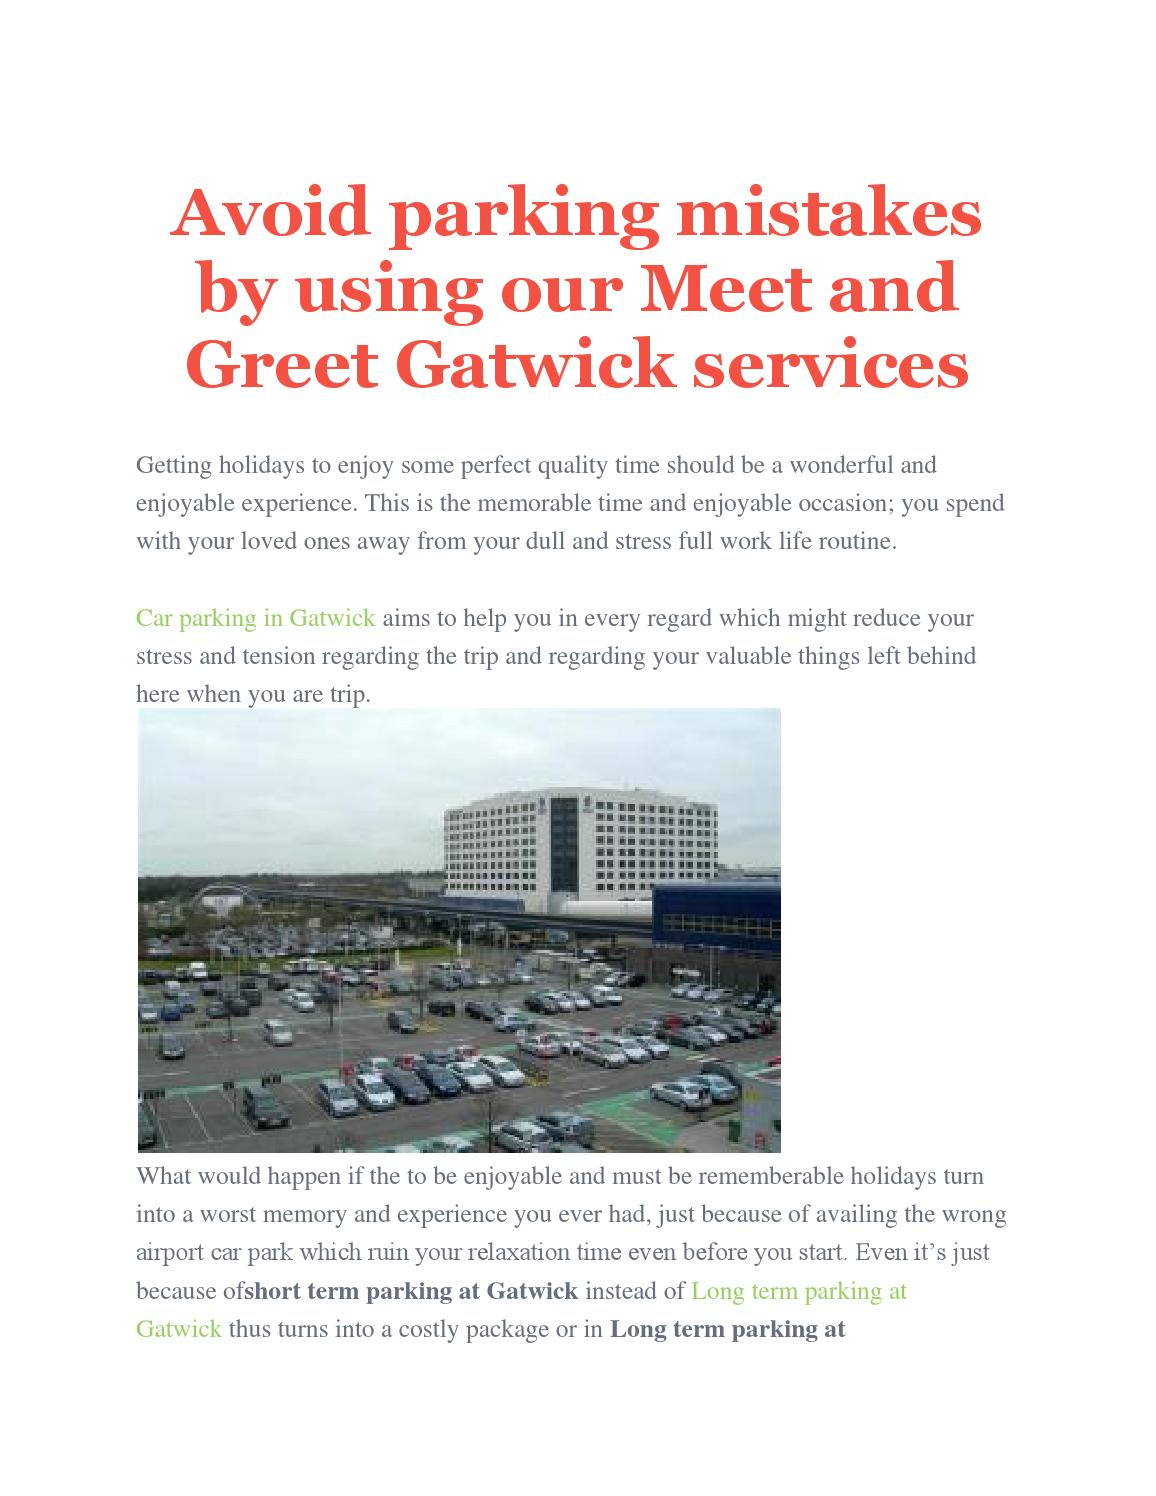 Avoid Parking Mistakes By Using Our Meet And Greet Gatwick Services